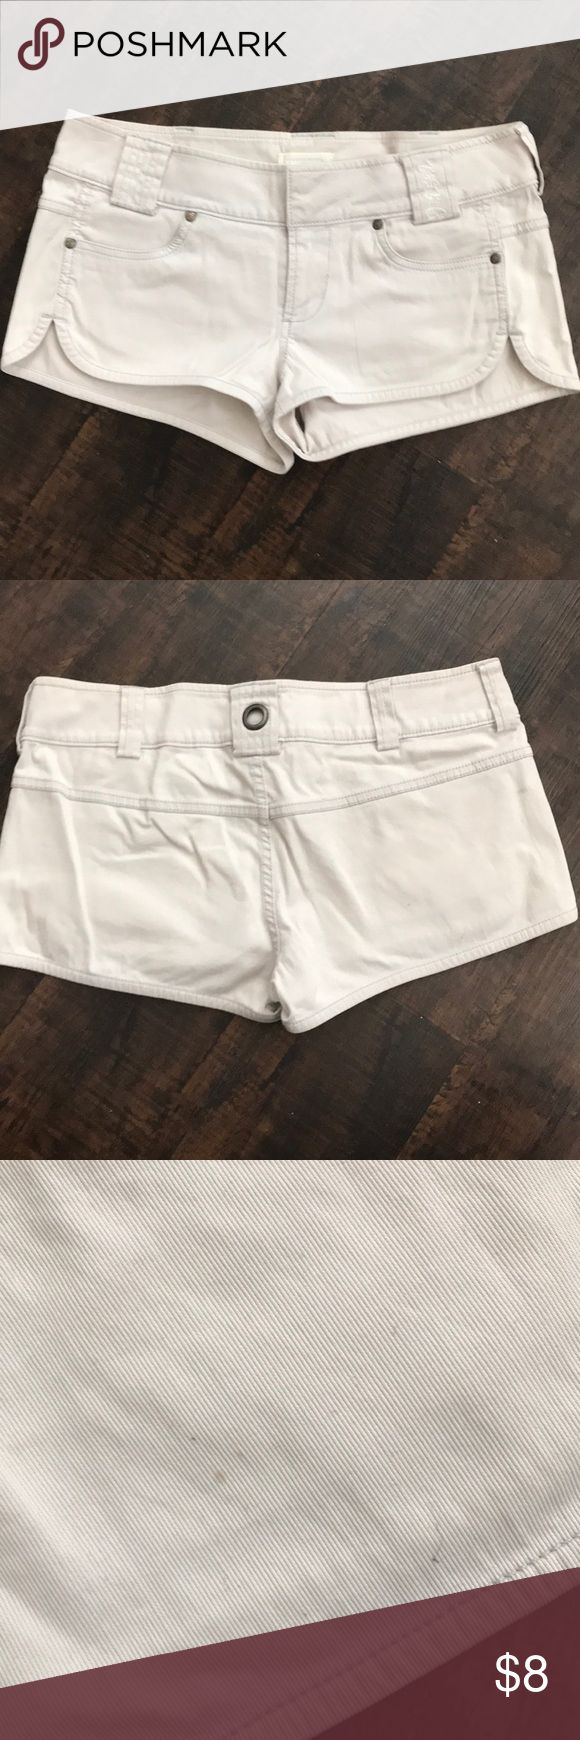 Diesel Shorts Diesel low rise shorts. Two button and fly closure. Two side pockets on front. Diesel Shorts